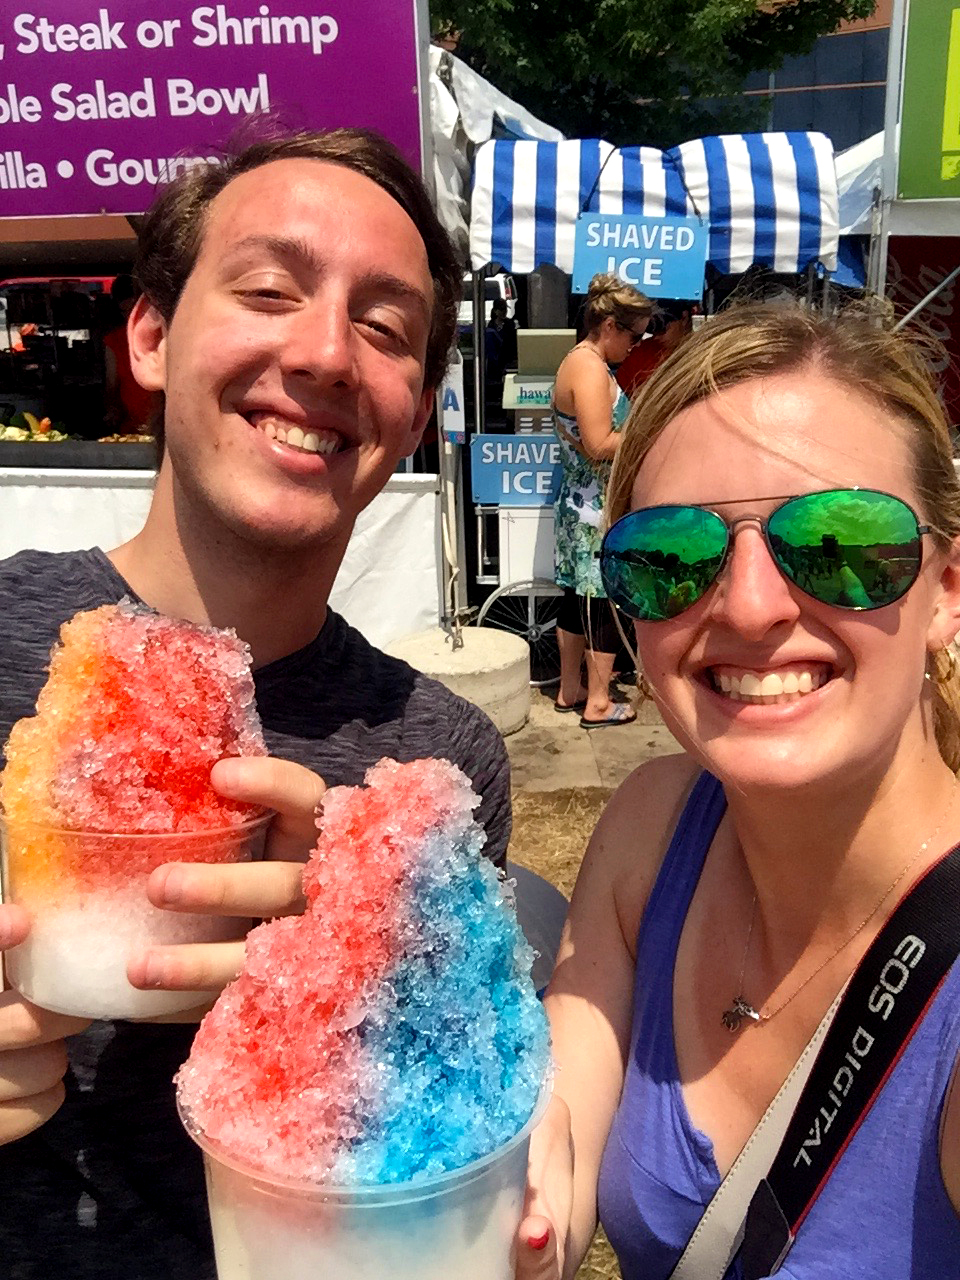 We love shaved ice :)